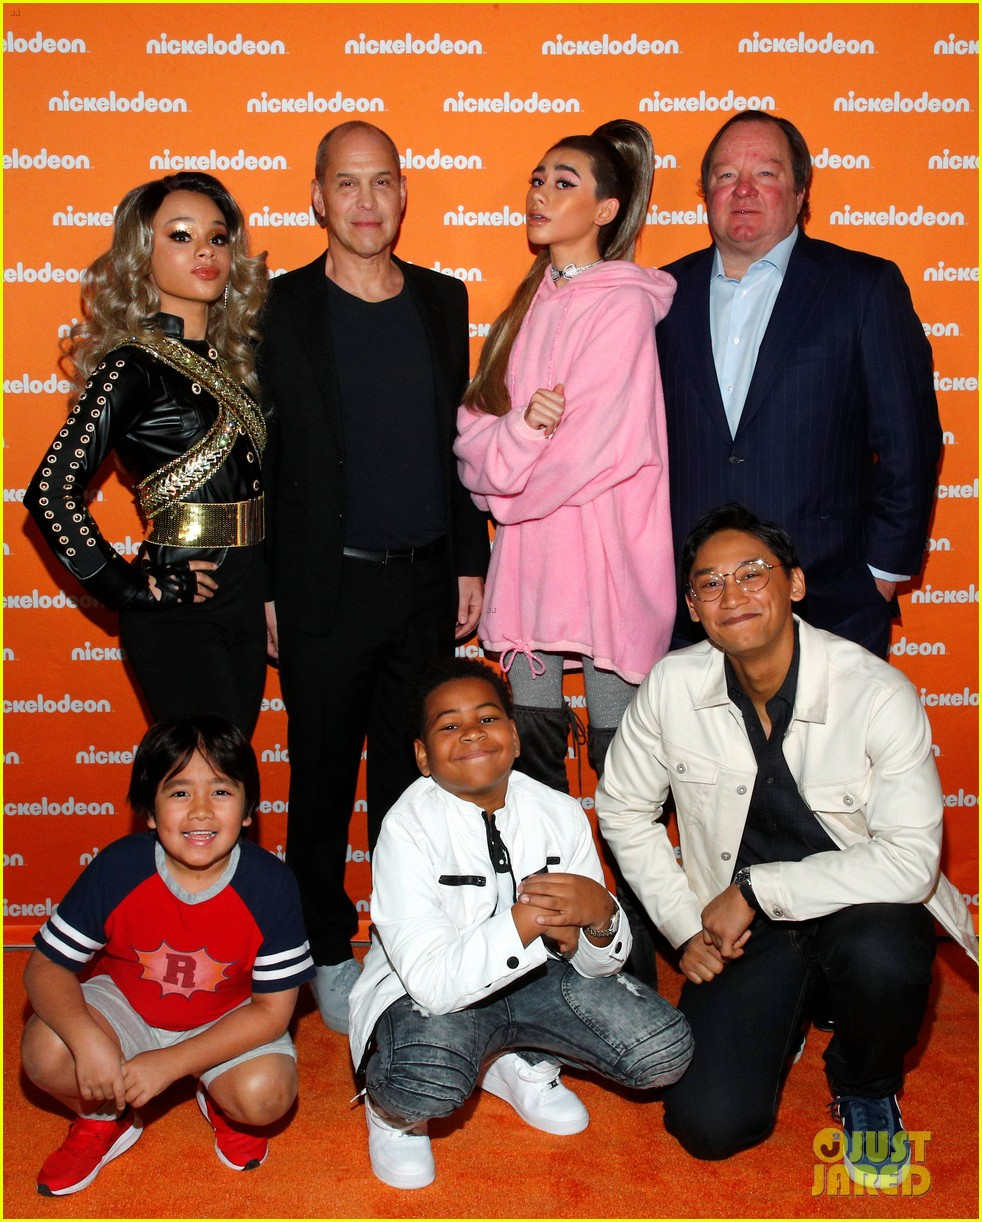 nathan janak gabrielle green dress up as ariana grande beyonce for nickelodeon event 01